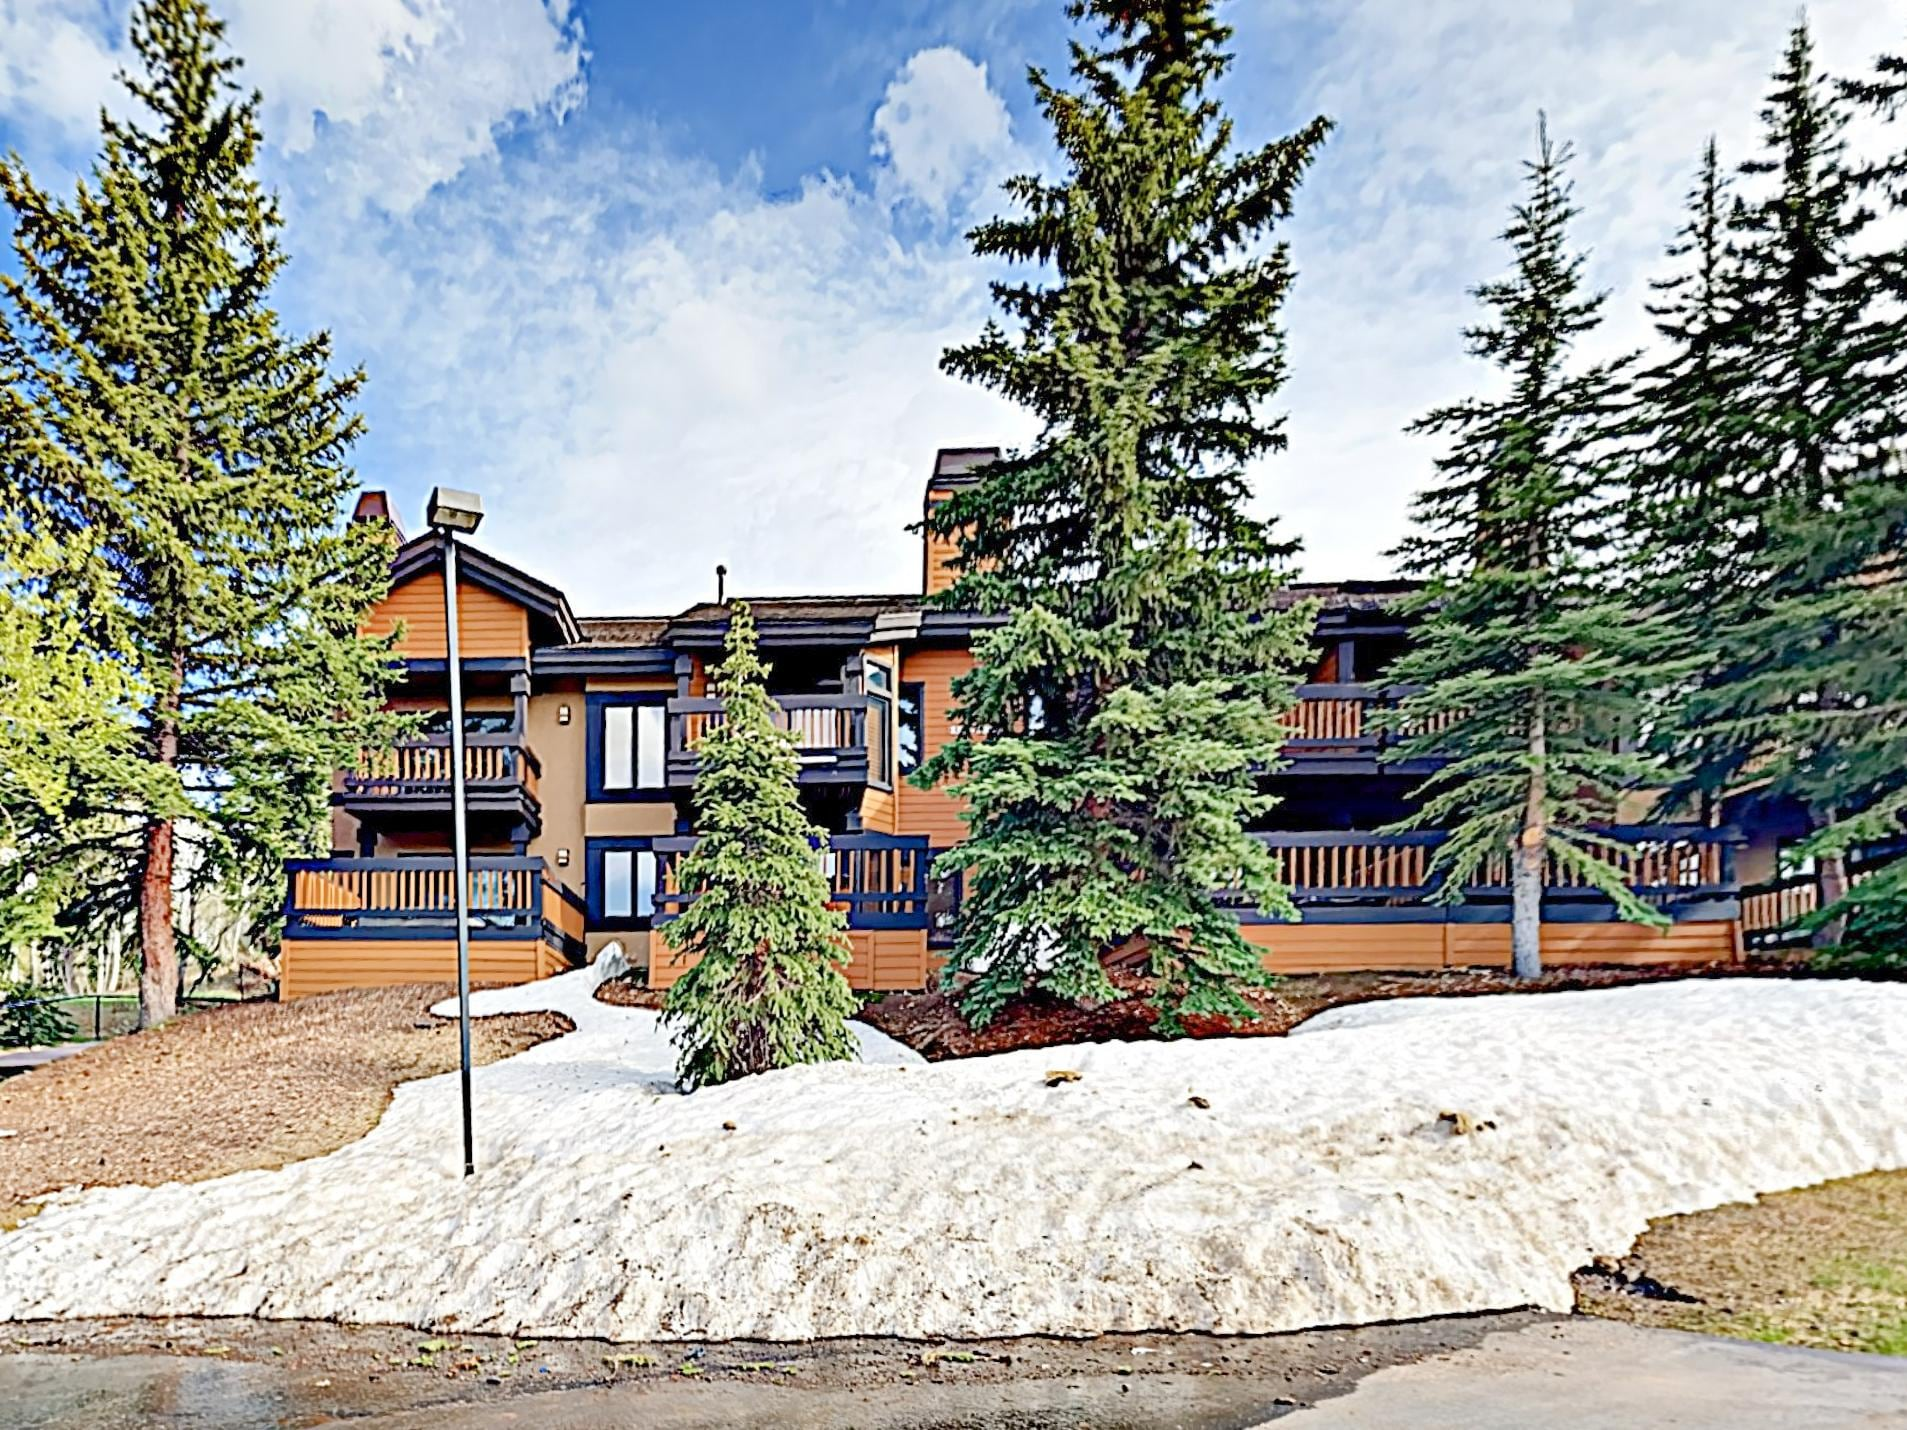 This townhouse offers direct access to the Deer Valley lifts.